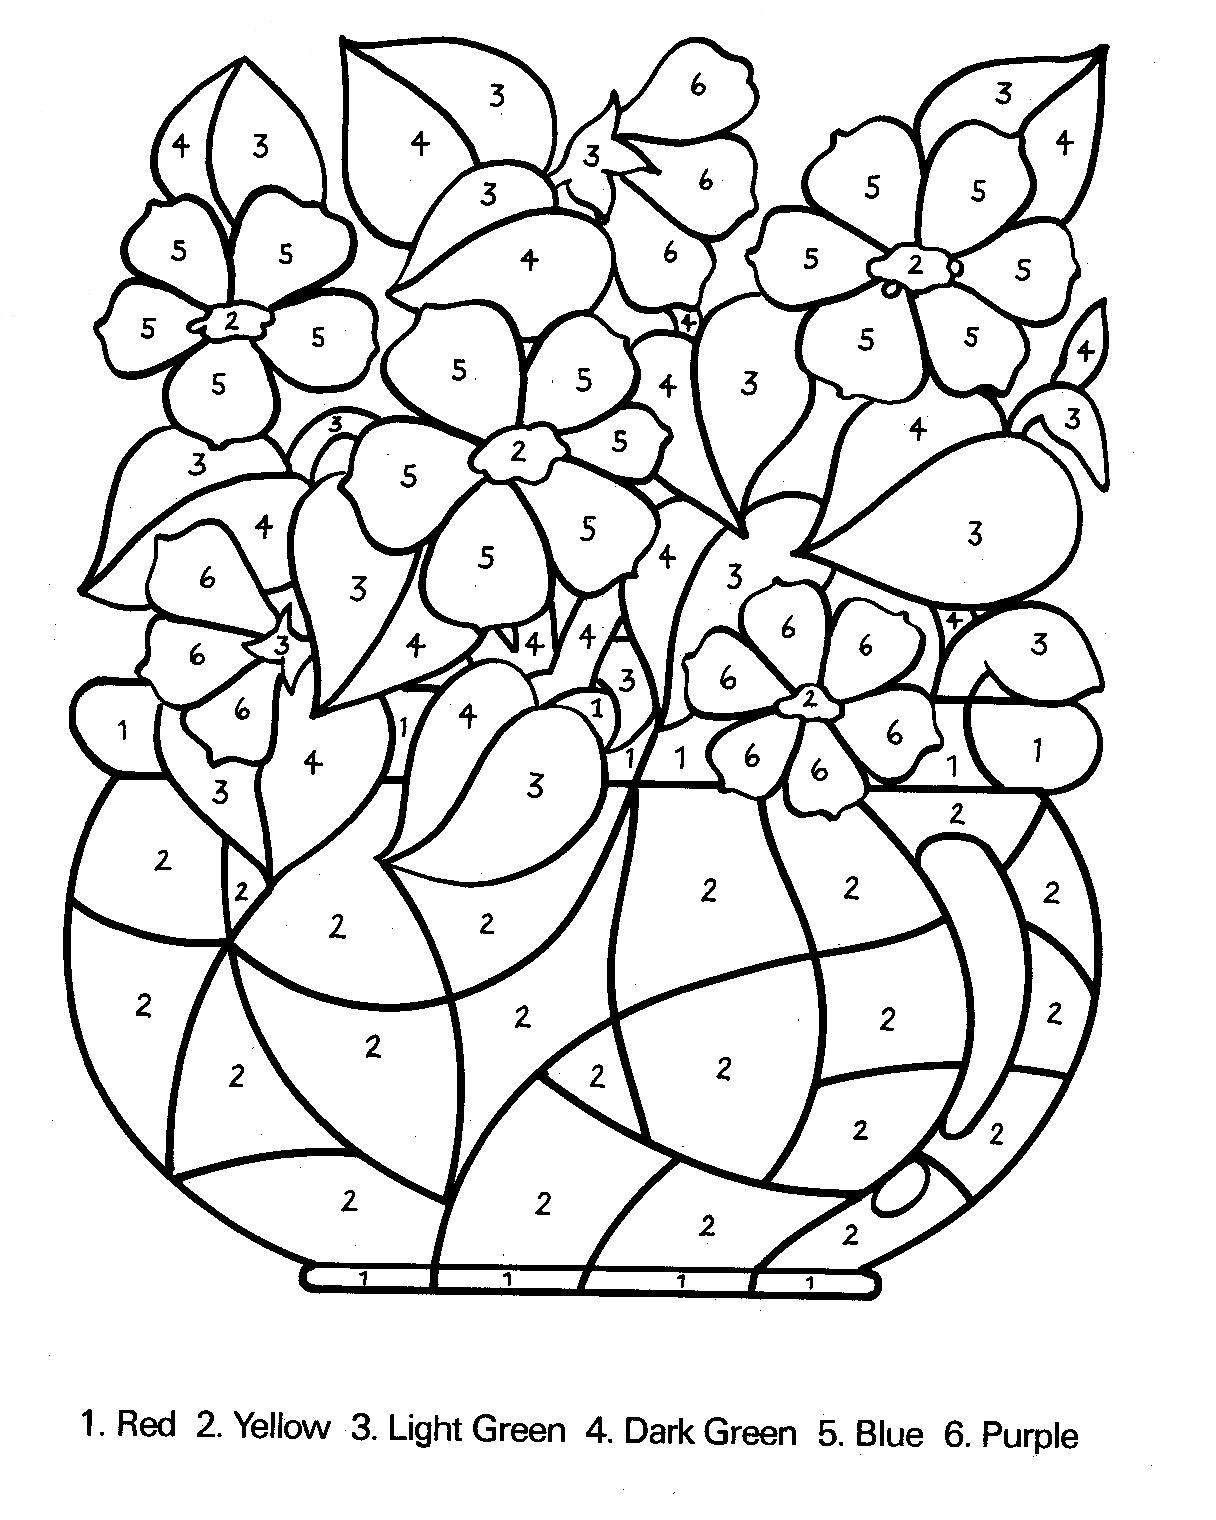 Printable coloring pages with math problems - Instead Of Using Numbers On The Picture Use Math Problems And Match The Color To The Sum Example Or Spell Words For Child To Read And Instead Of